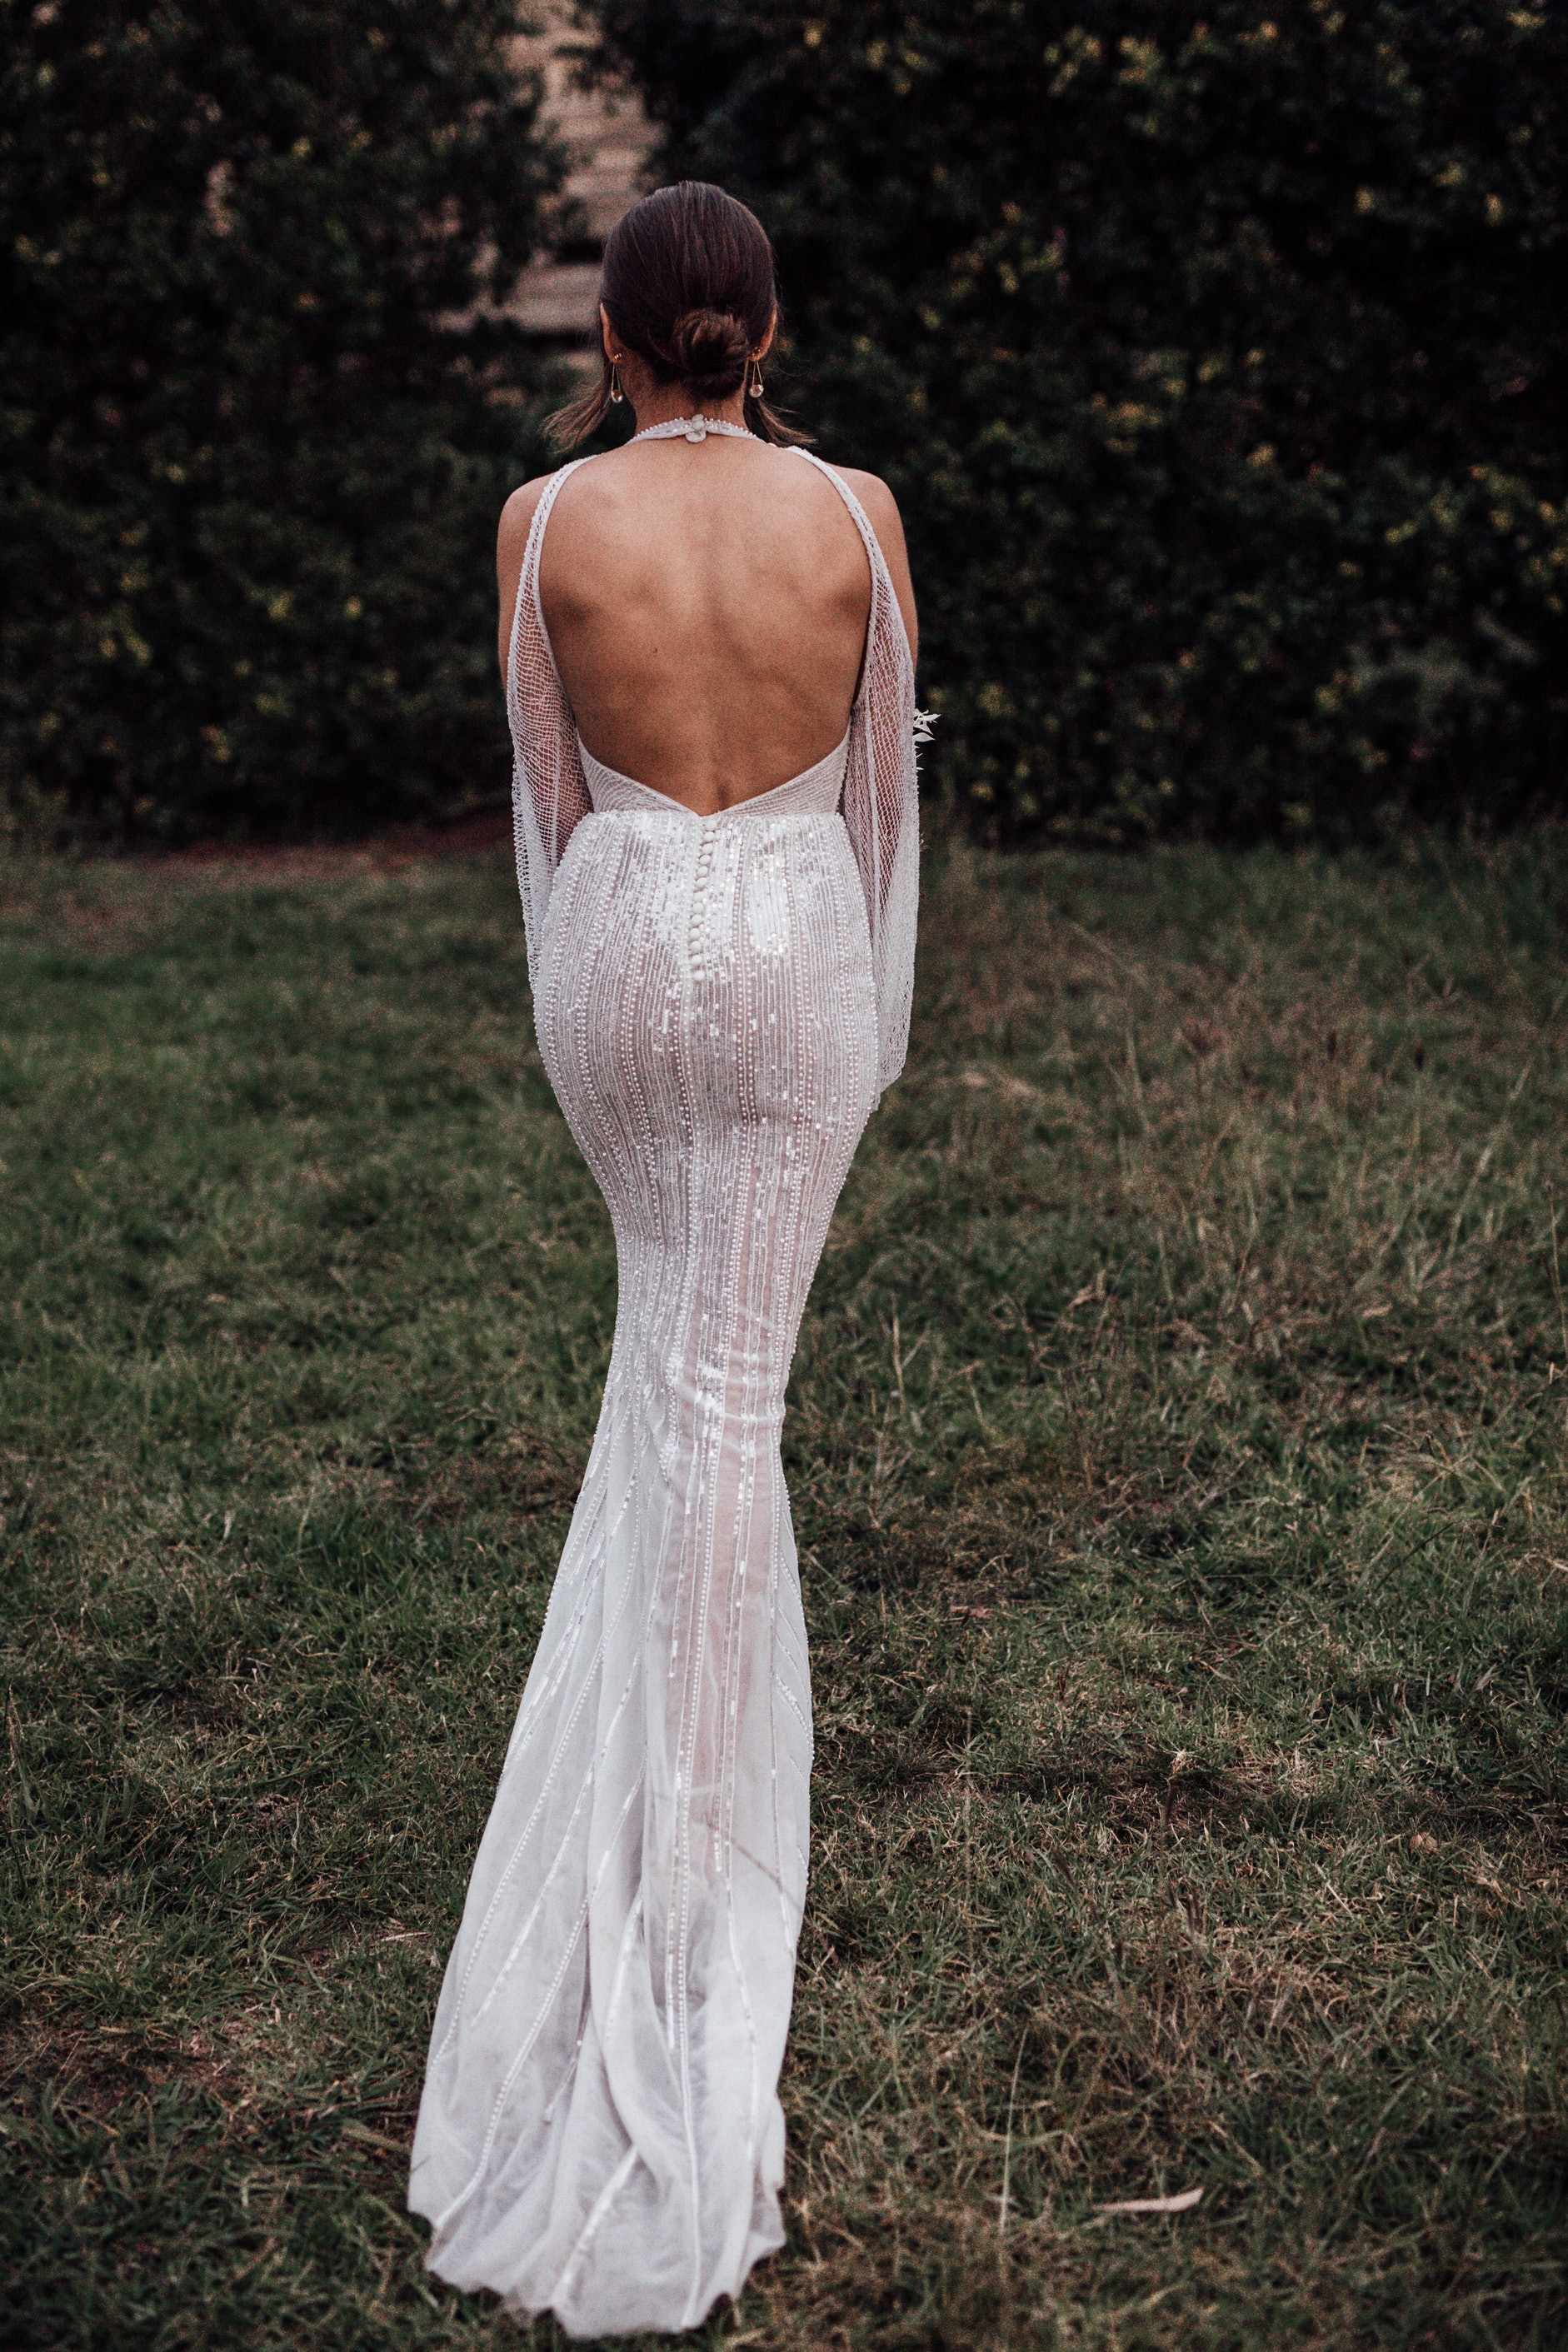 Bride showing the back of her dress